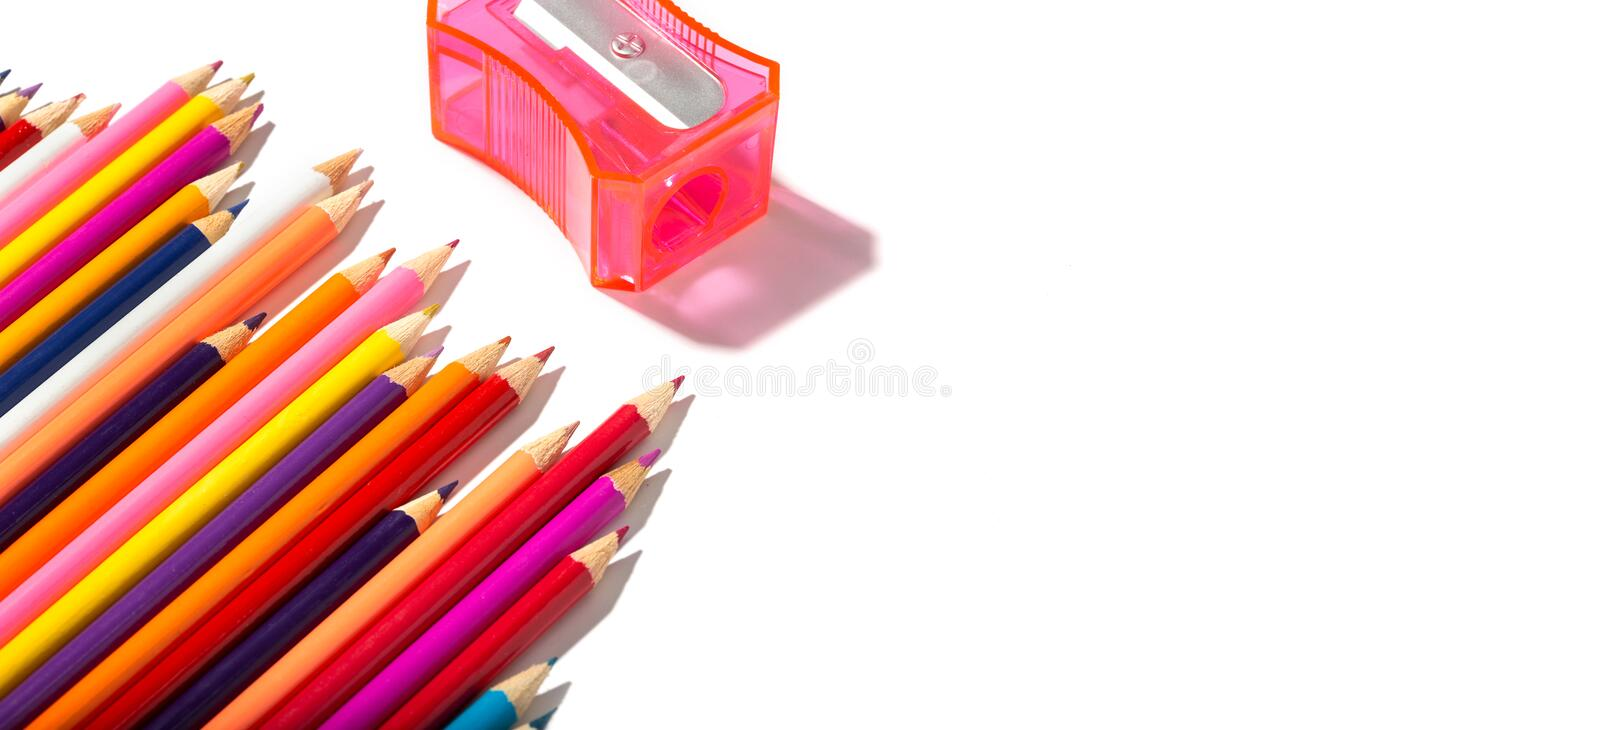 Back to school banner of multicolored pencils and pencil sharpener isolated on white background royalty free stock photos